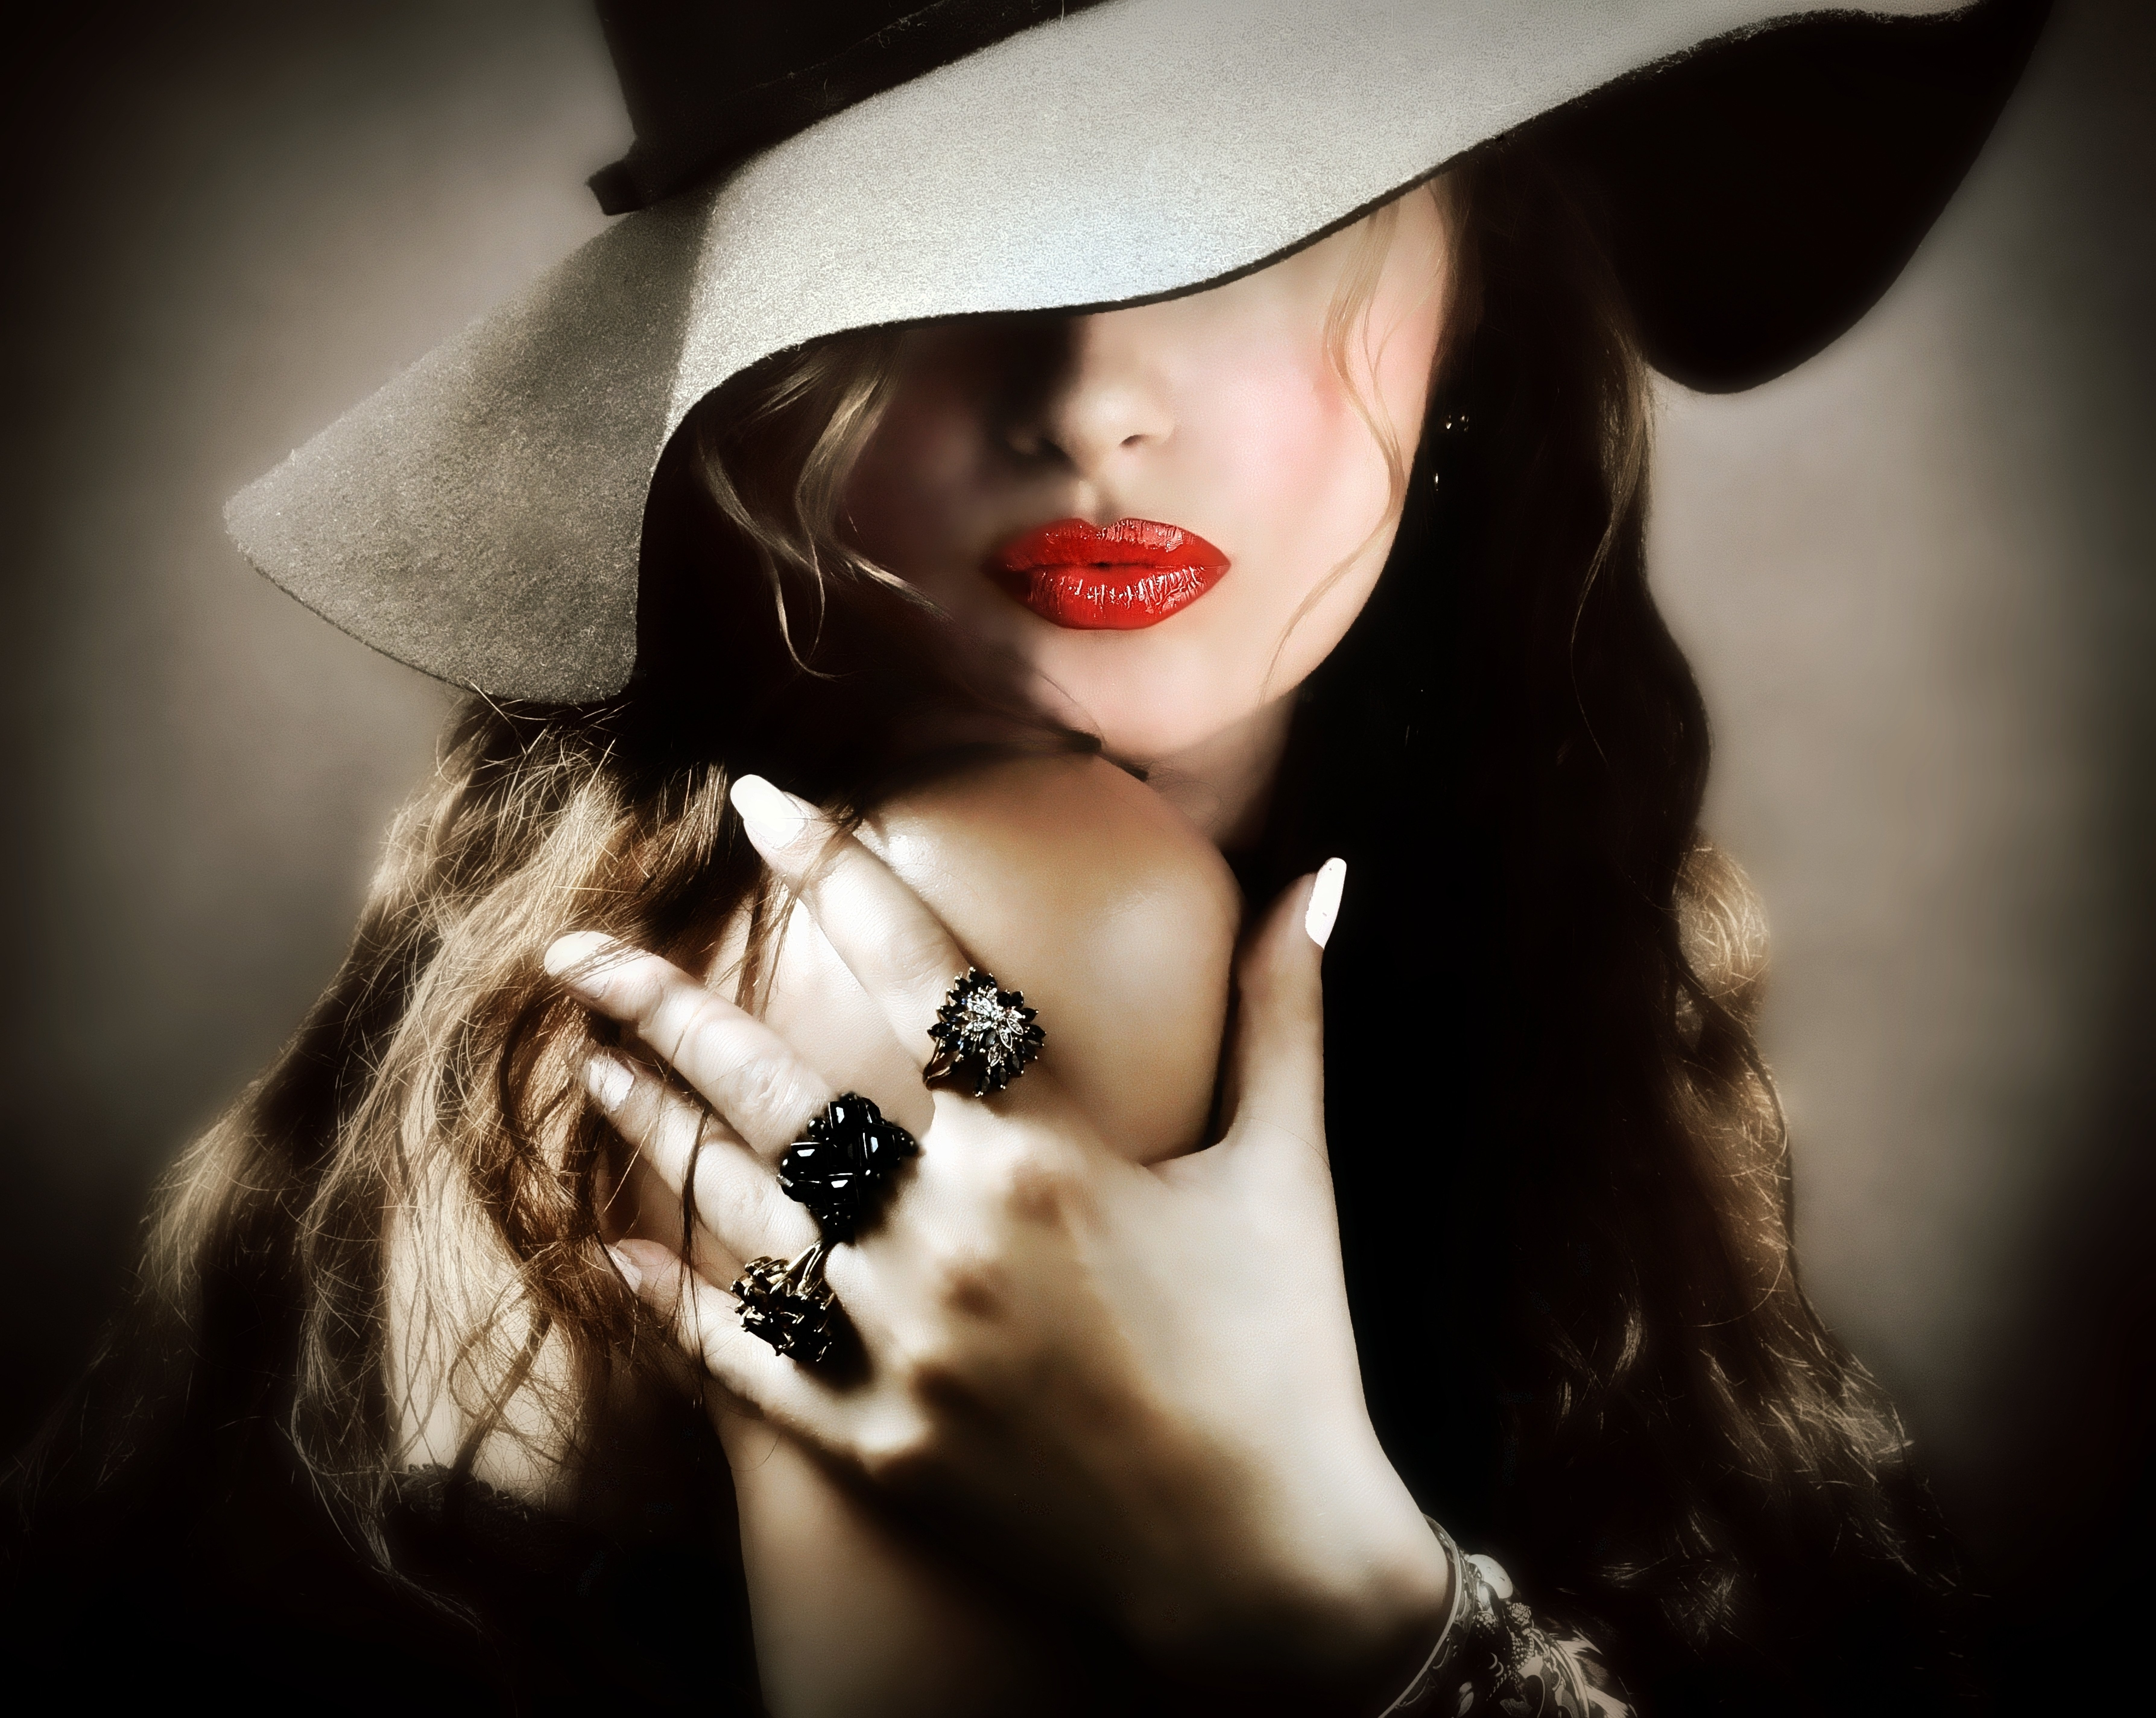 girl lipstick red lips hat hand ring wallpaper | 7150x5696 | 485555